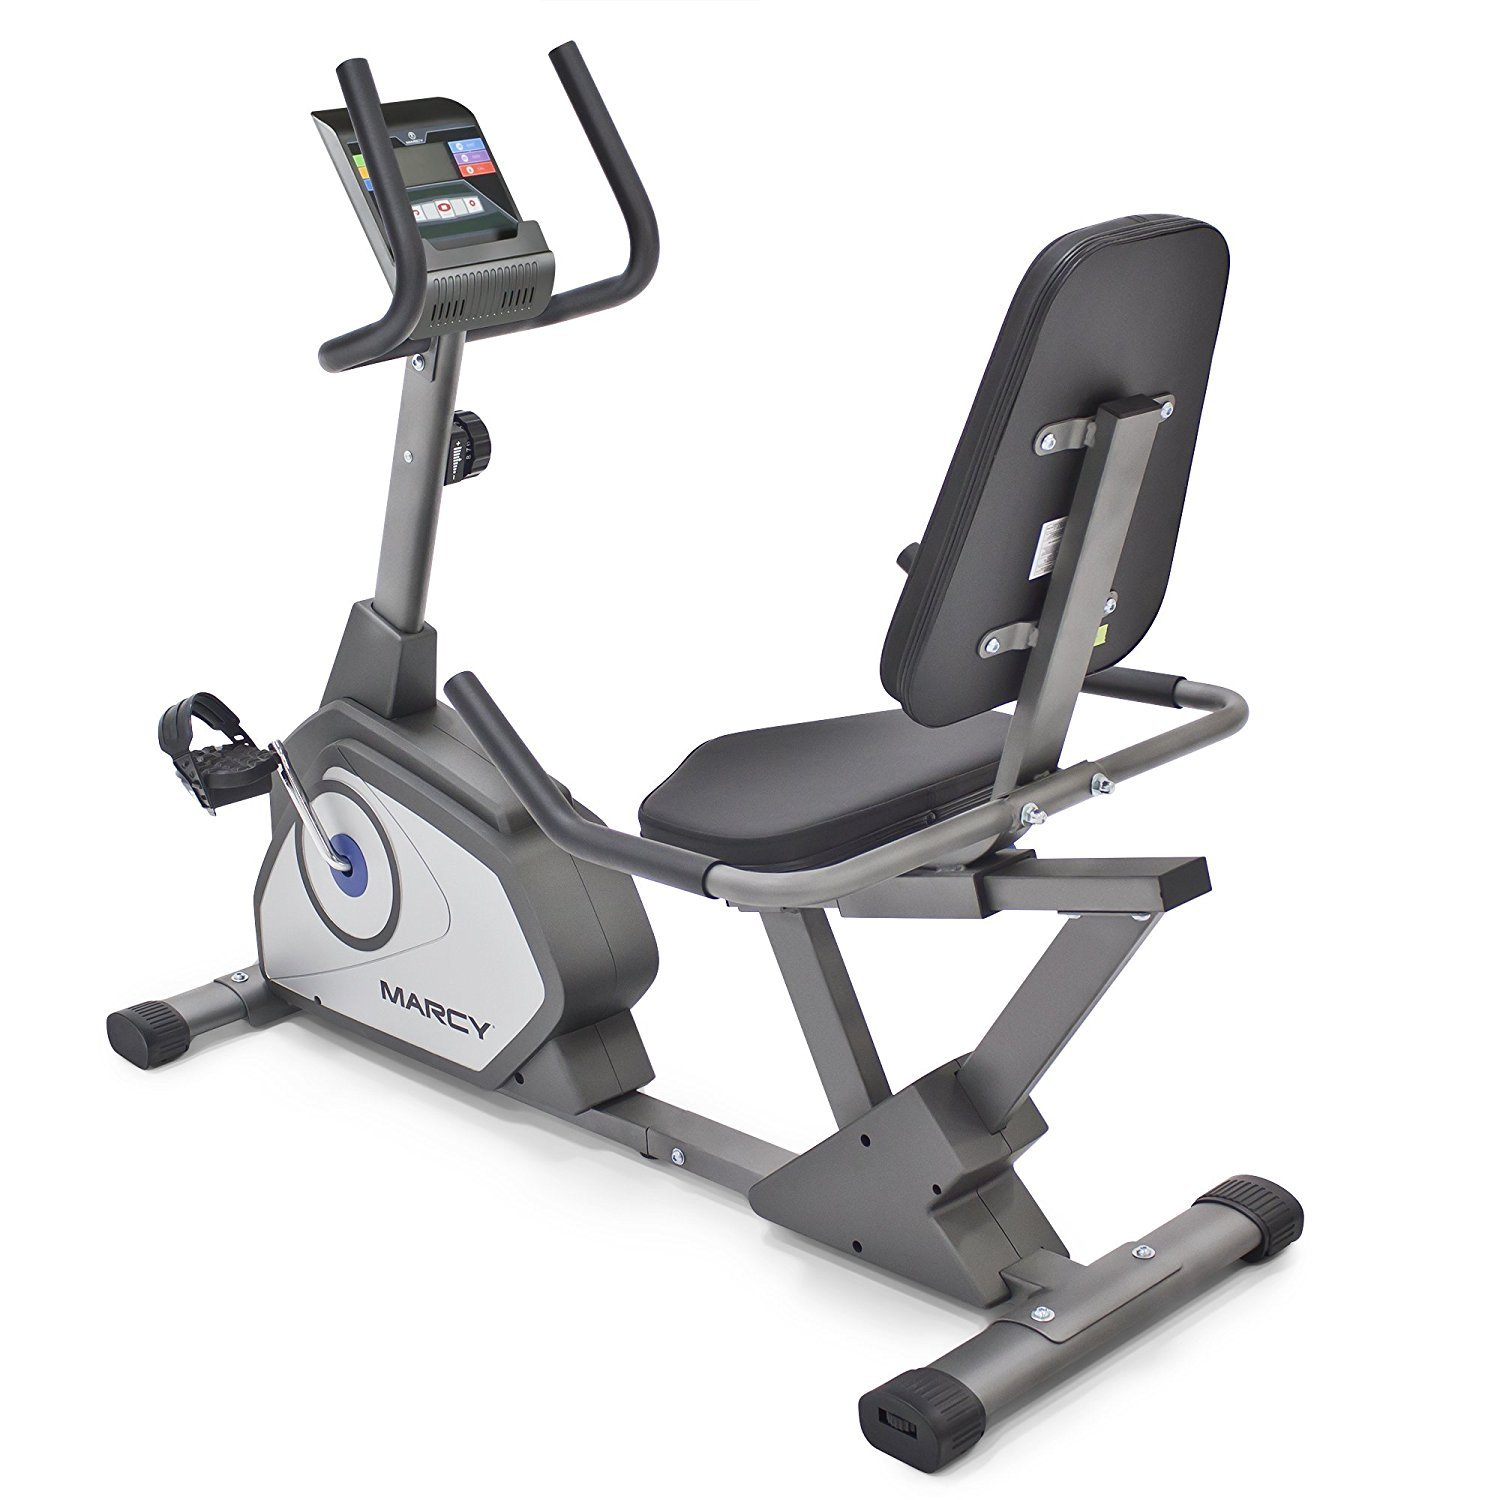 Marcy Magnetic Recumbent Exercise Bike with 8 Resistance Levels NS-40502R by Marcy (Image #3)